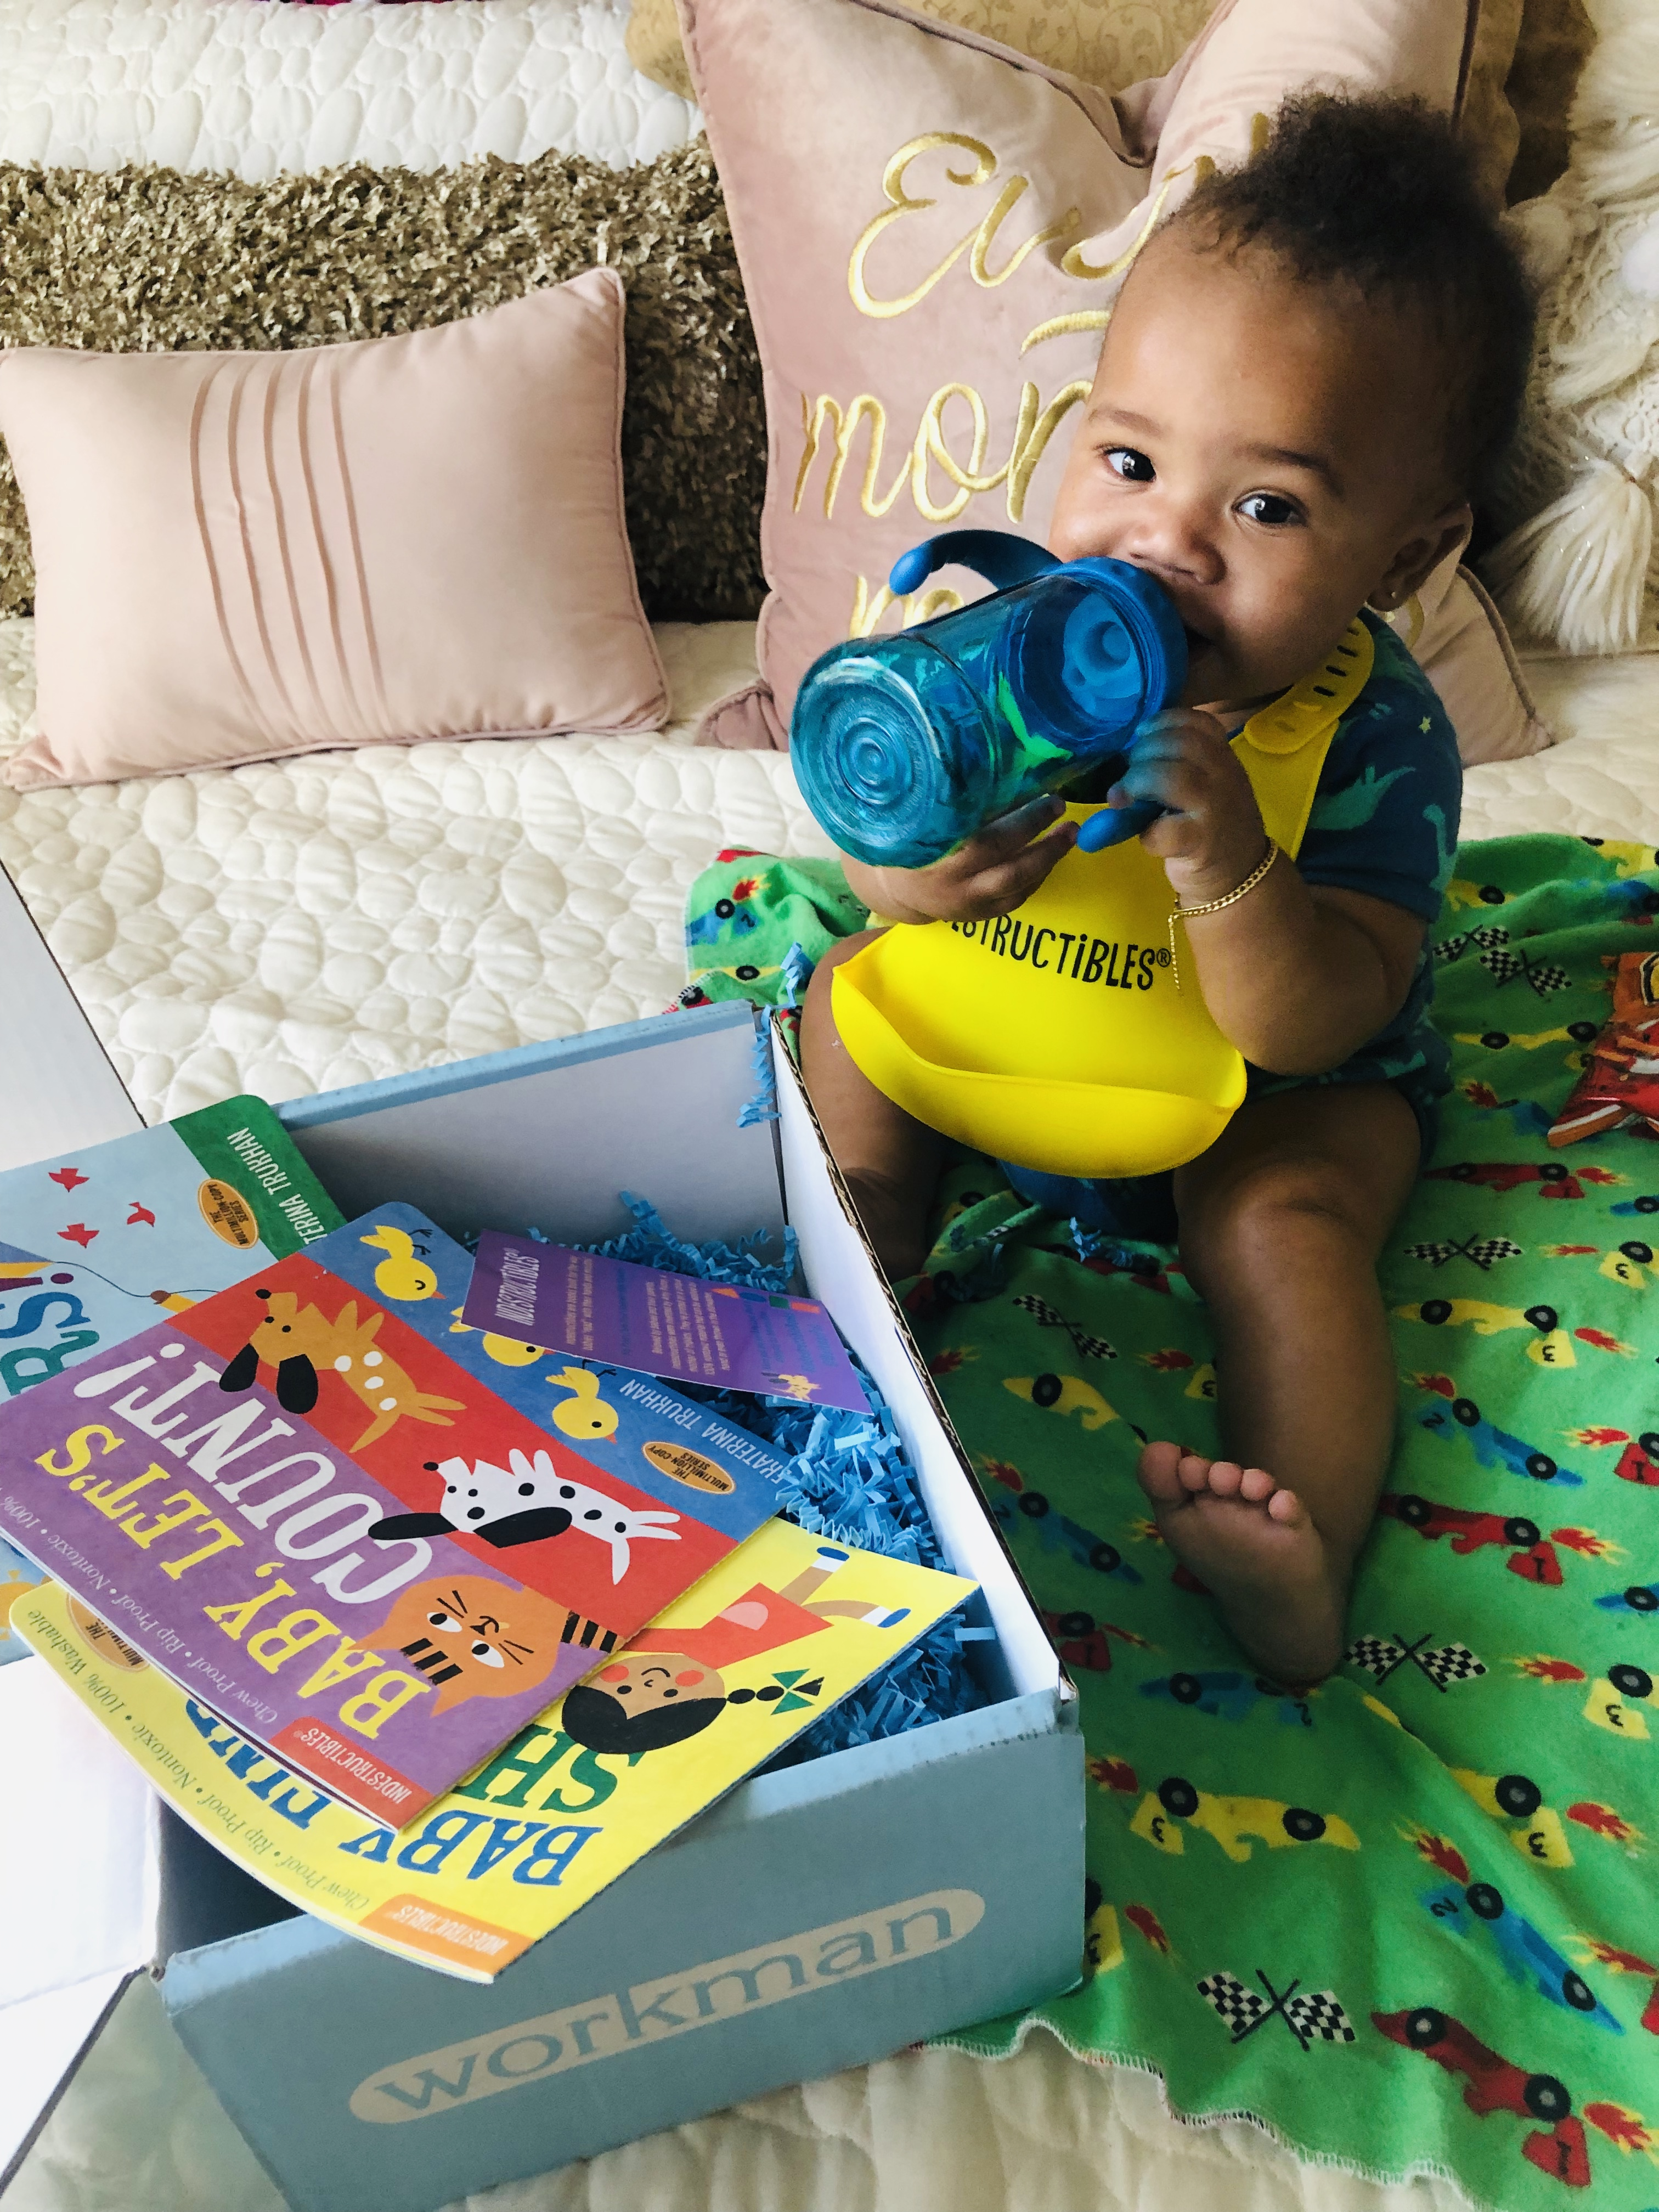 Baby Legend Does His First Unboxing, Indestructibles